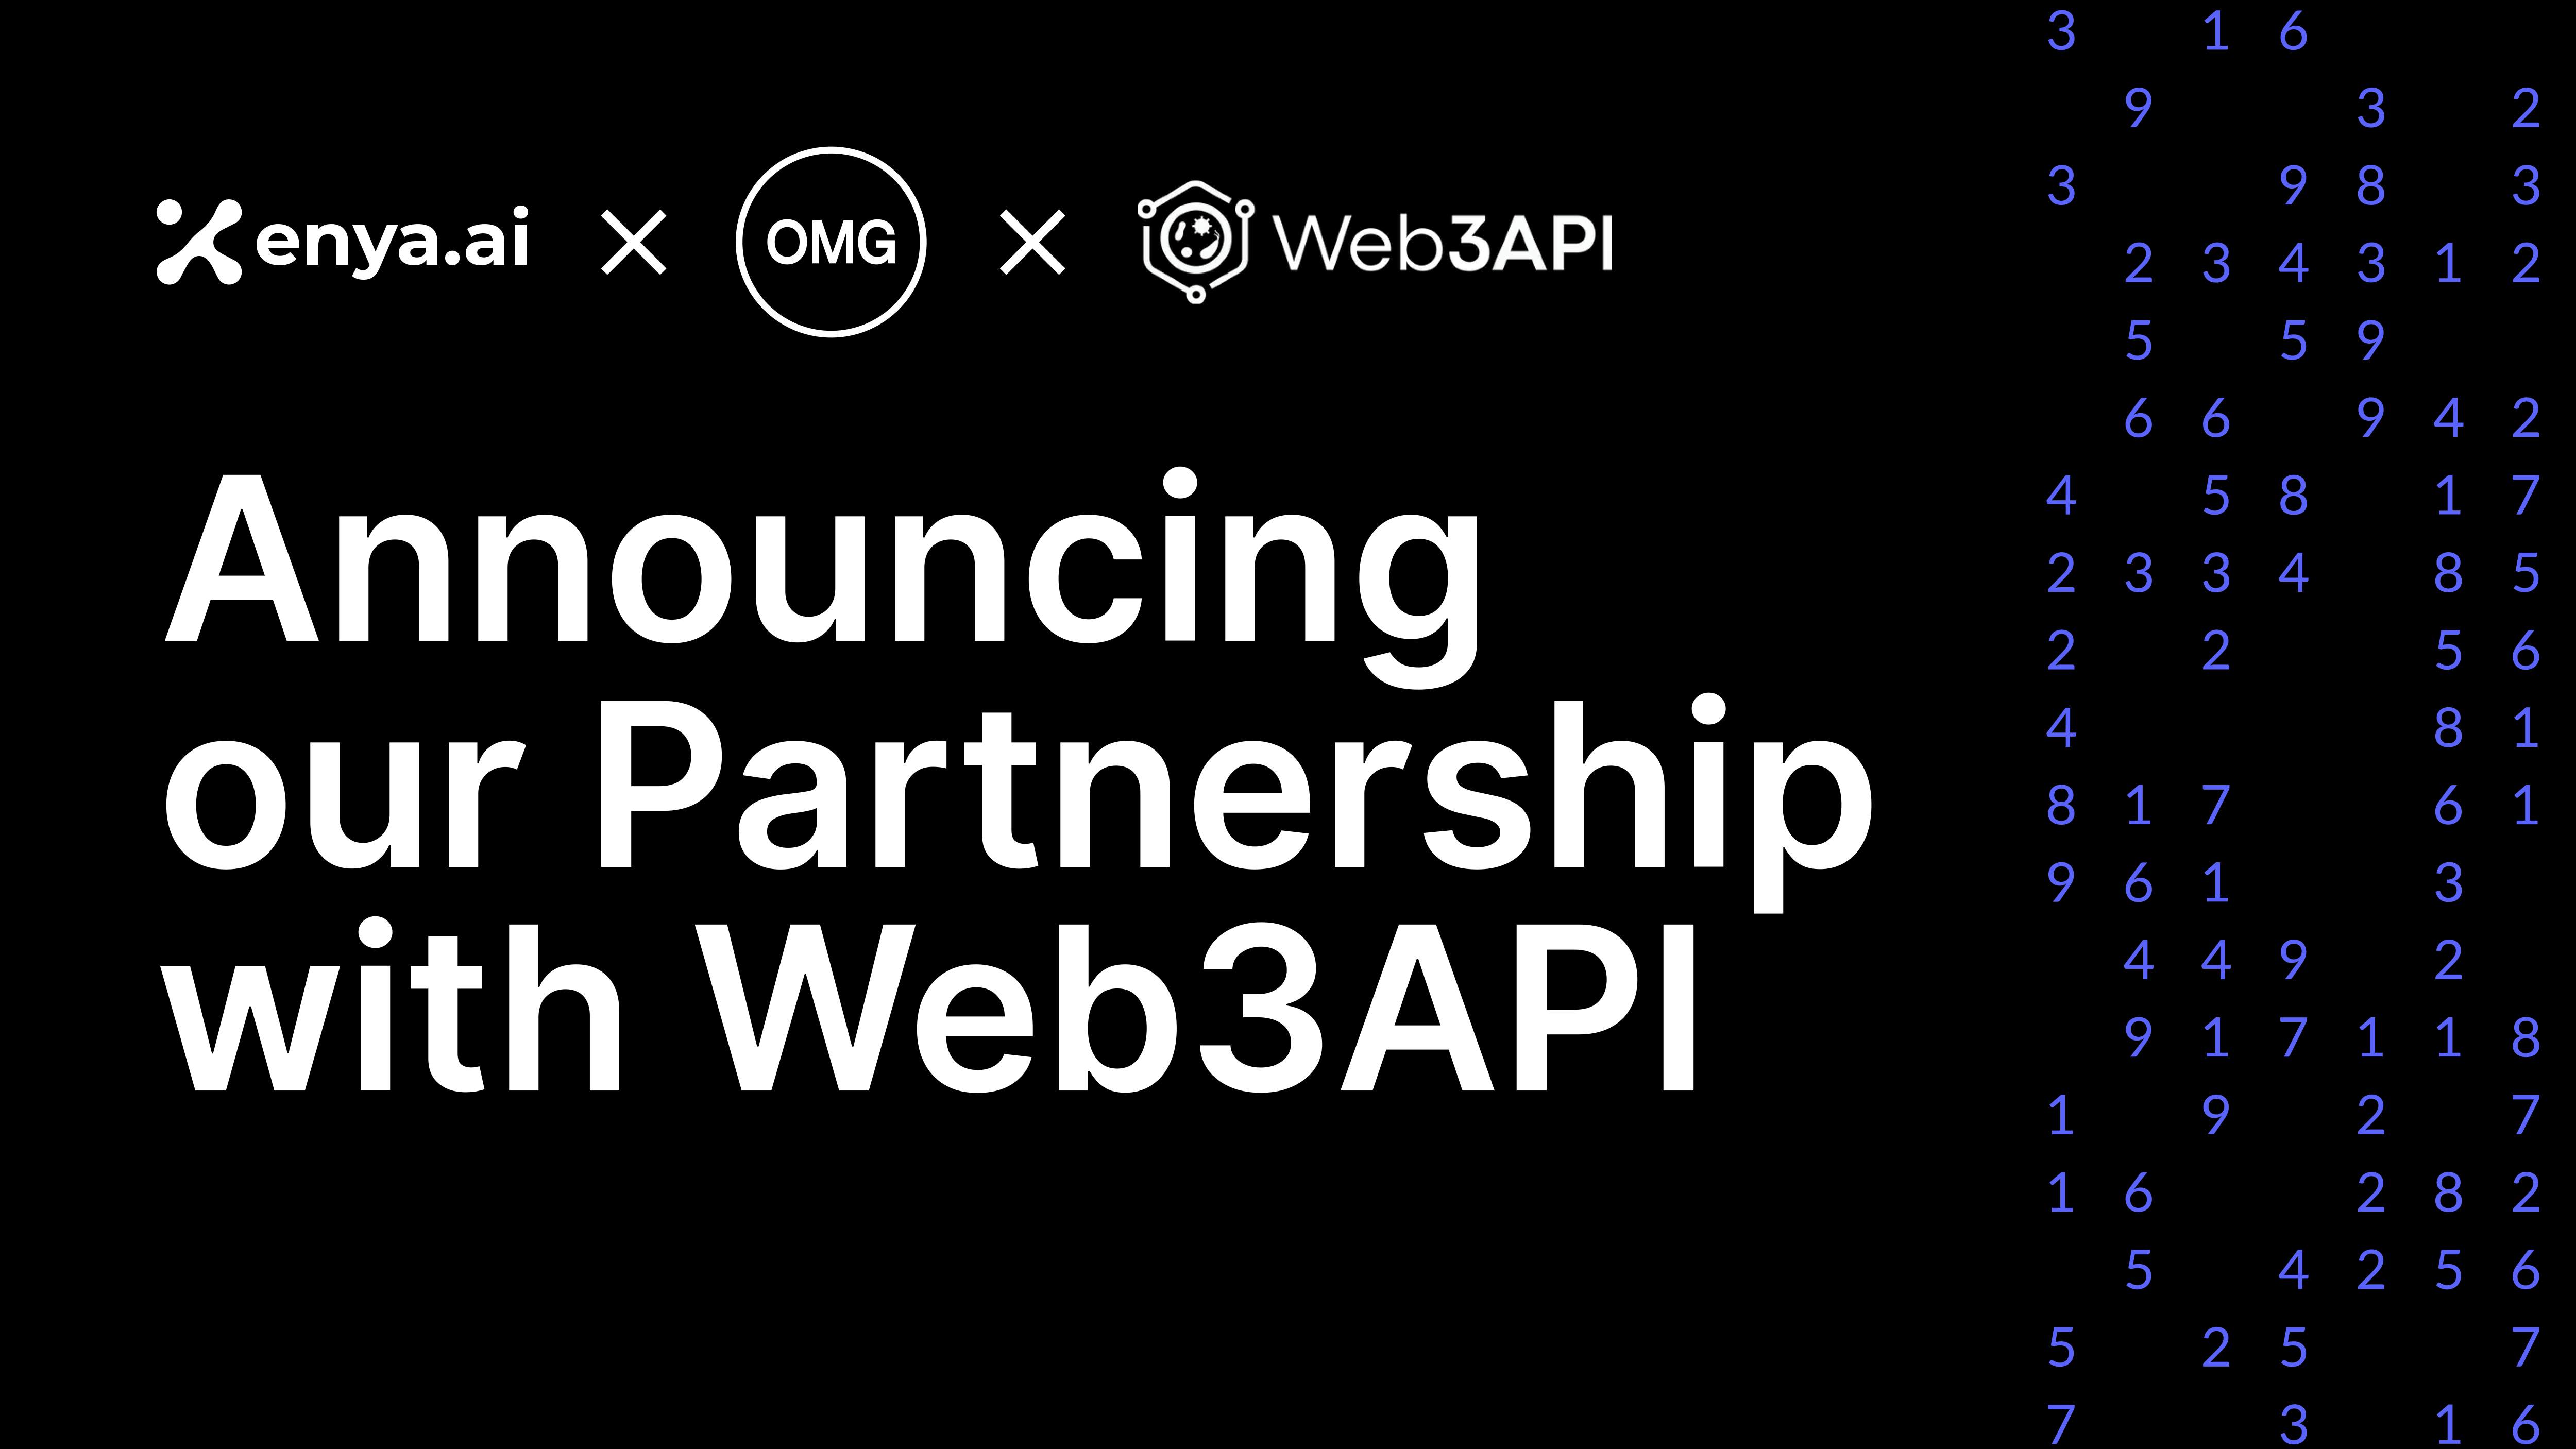 Enya and OMG Network Announce Partnership With Web3API